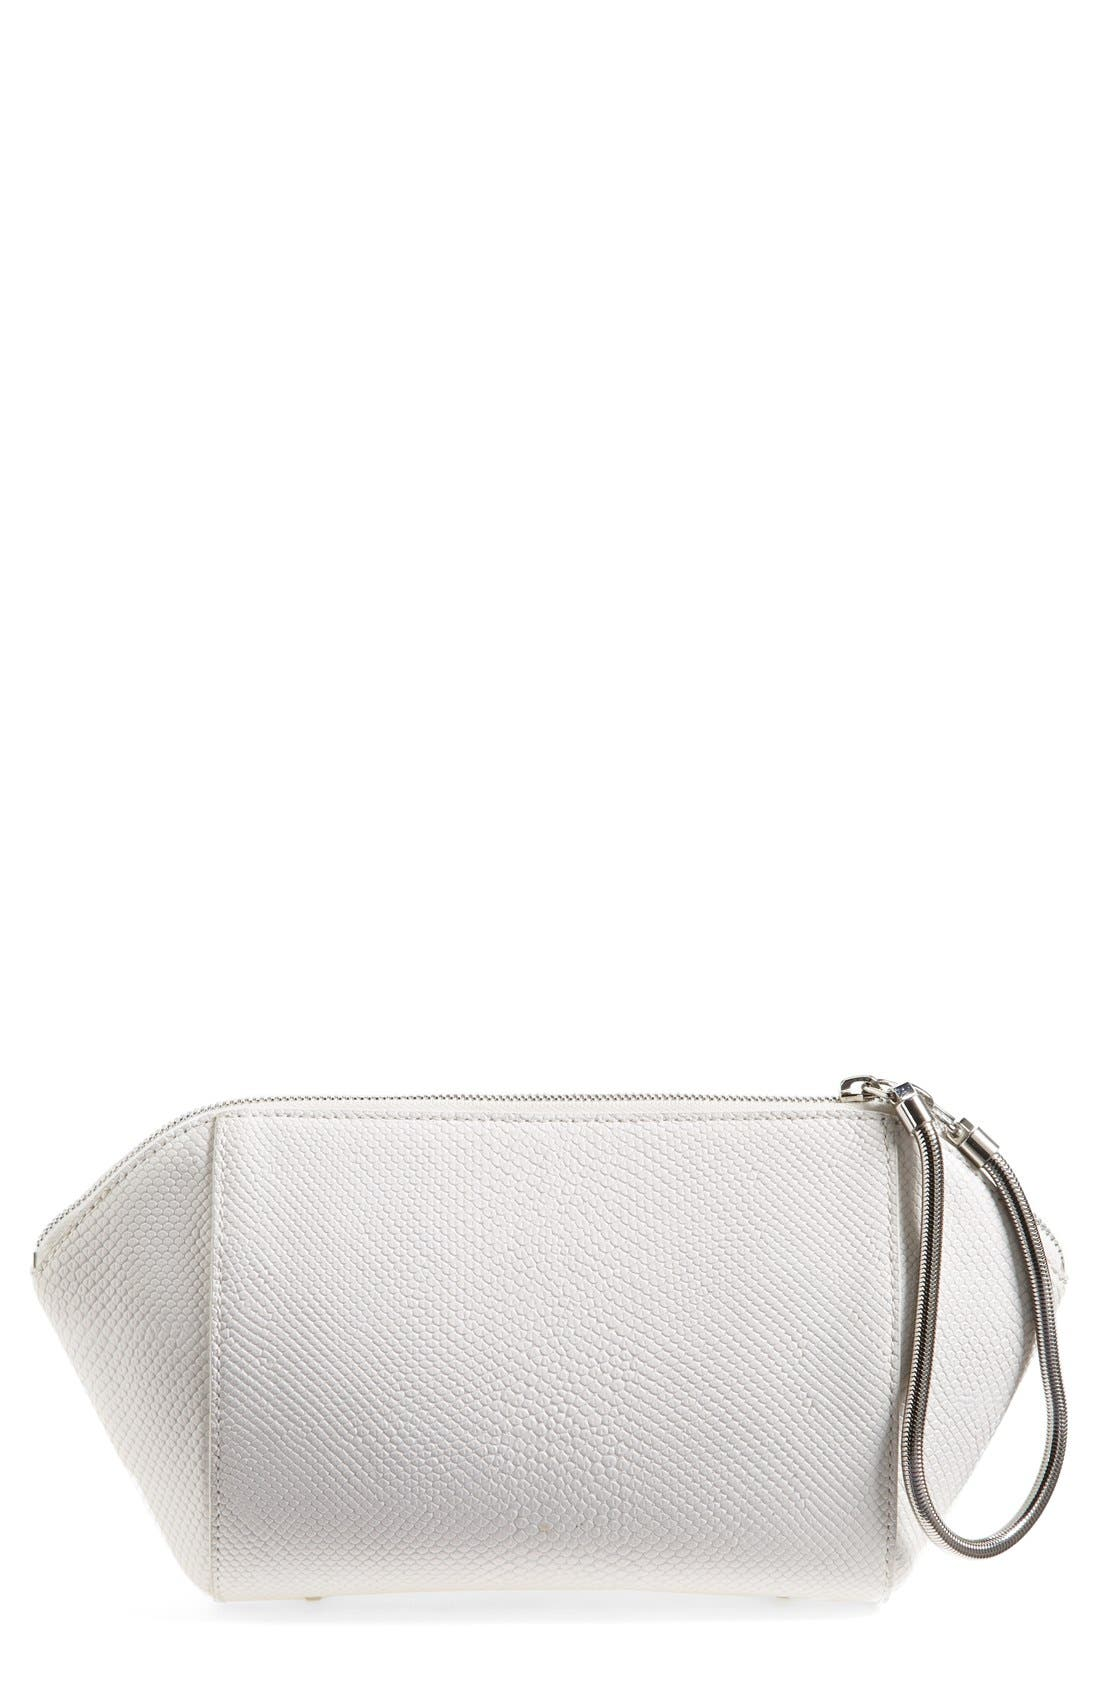 Main Image - Alexander Wang 'Chastity' Leather Clutch